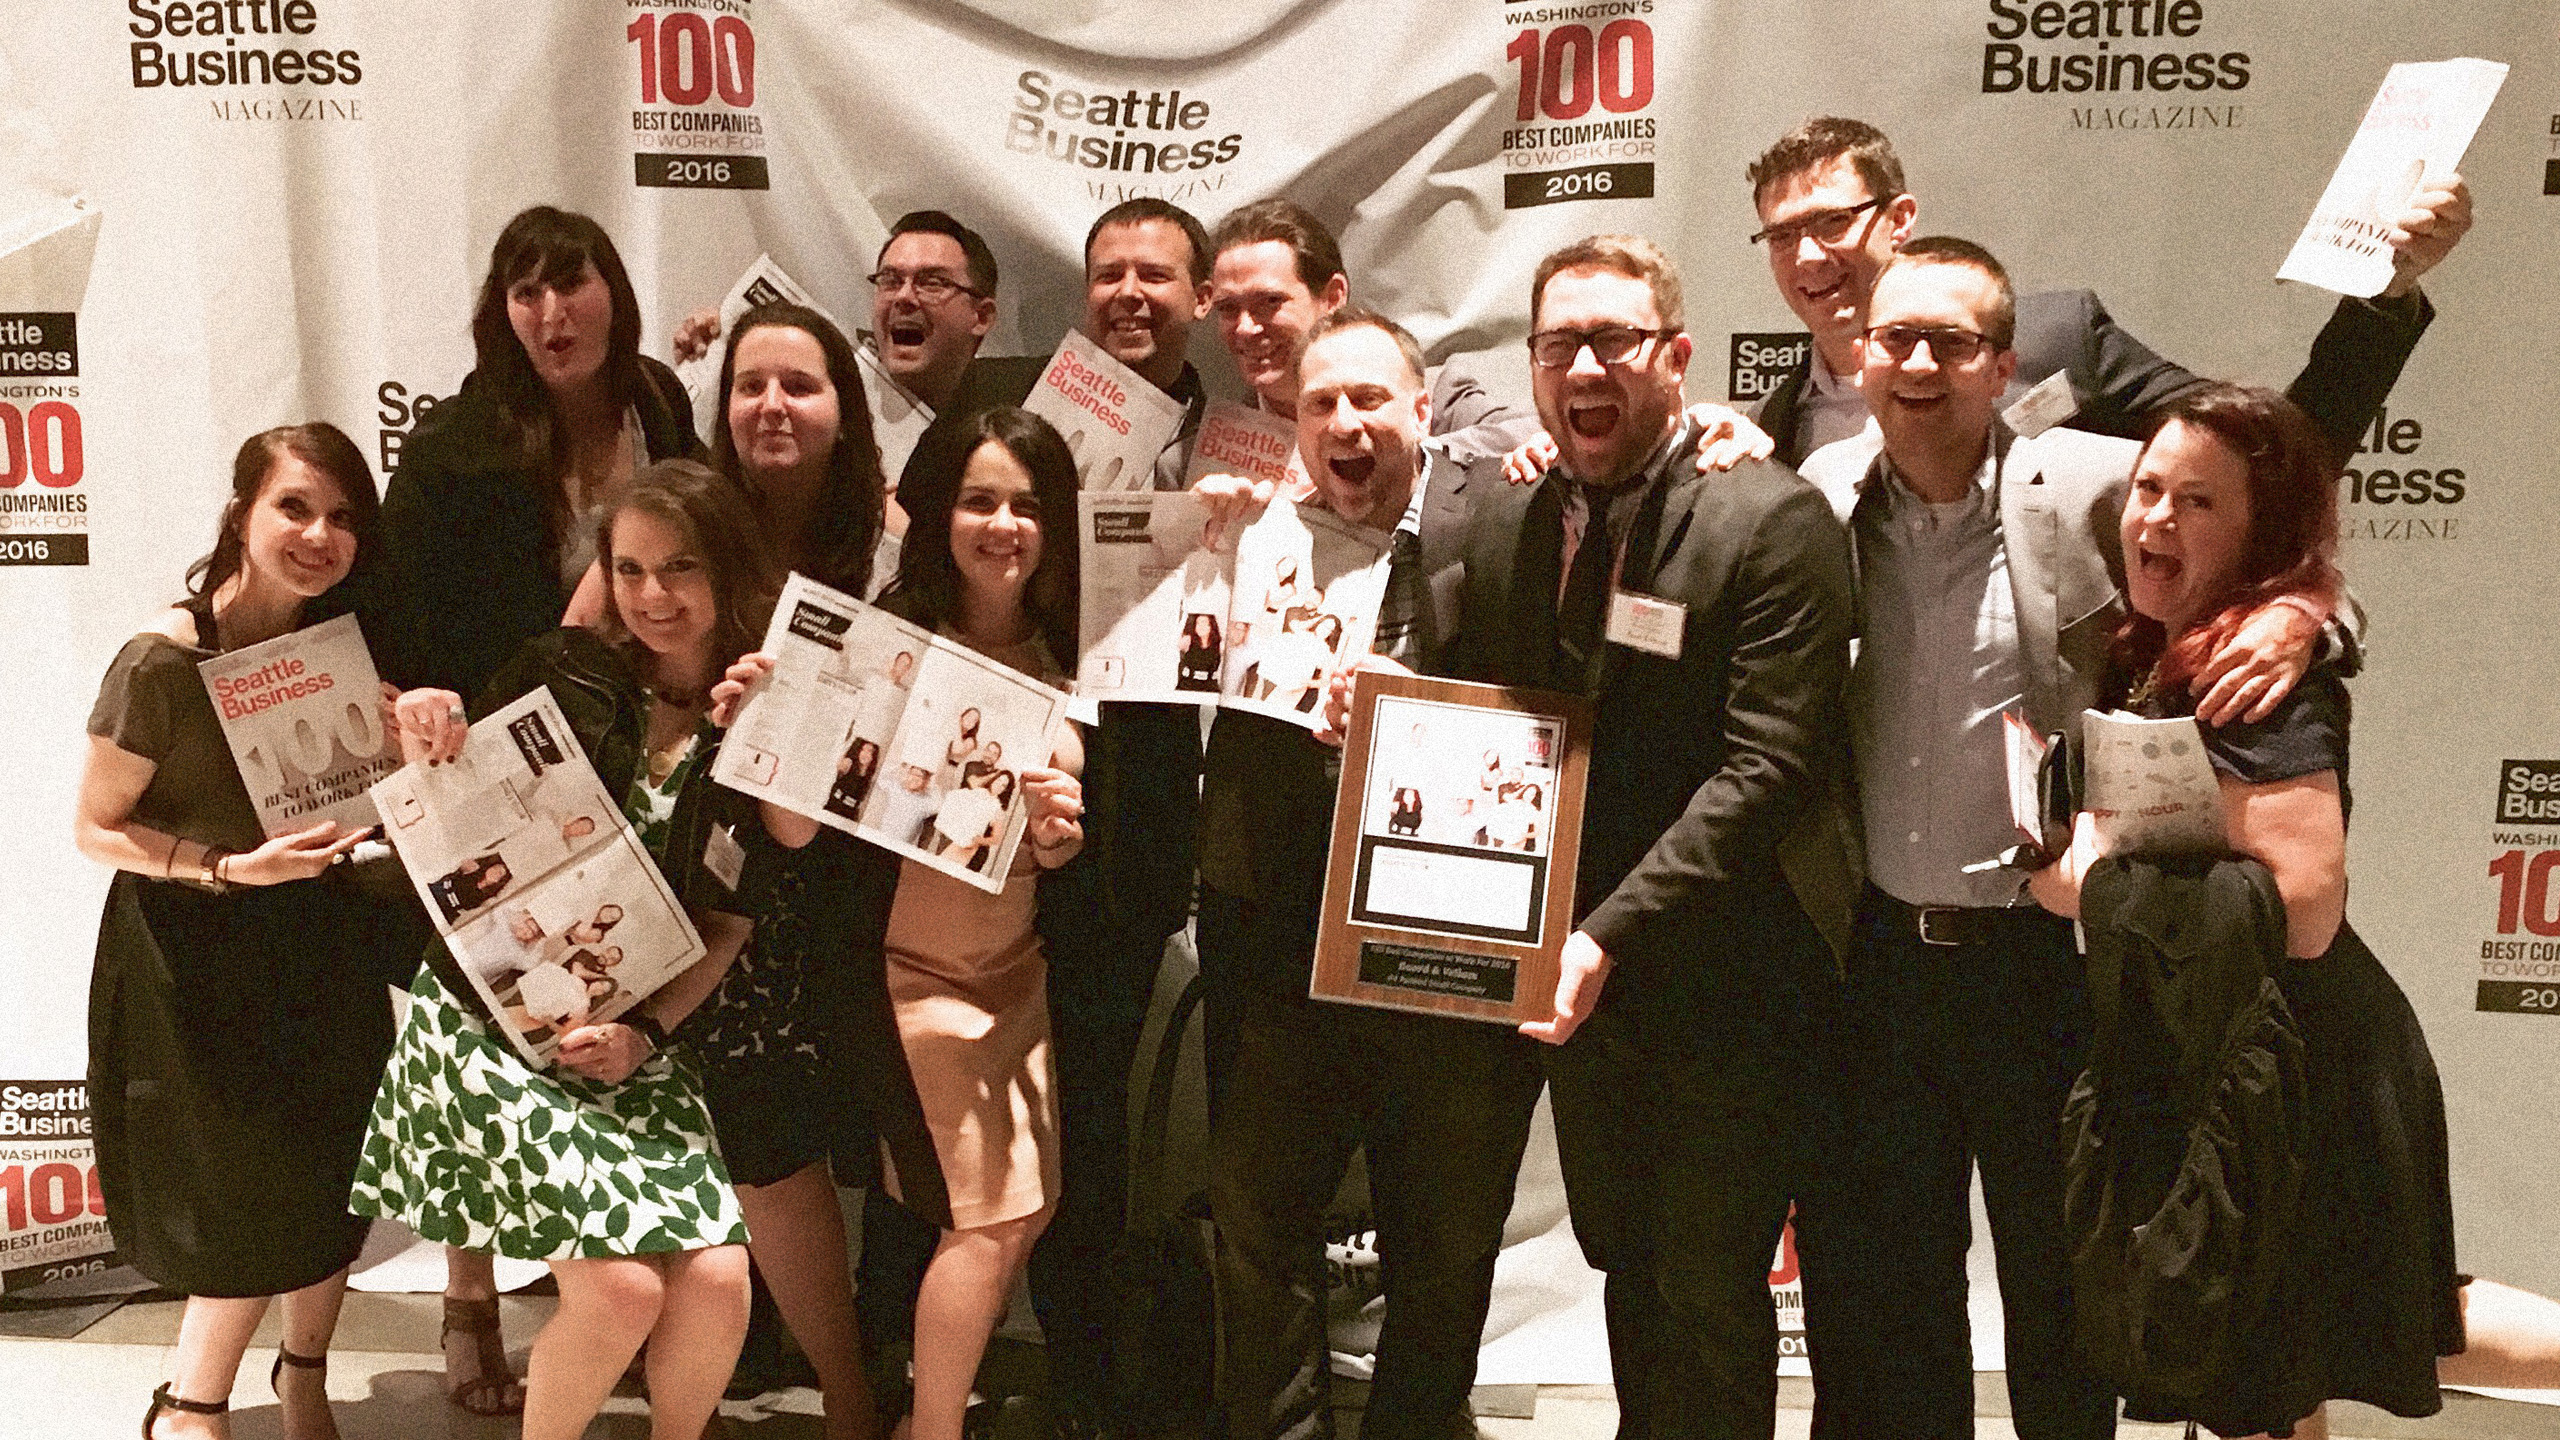 Board & Vellum Places 4th for Best Small Businesses to Work For –